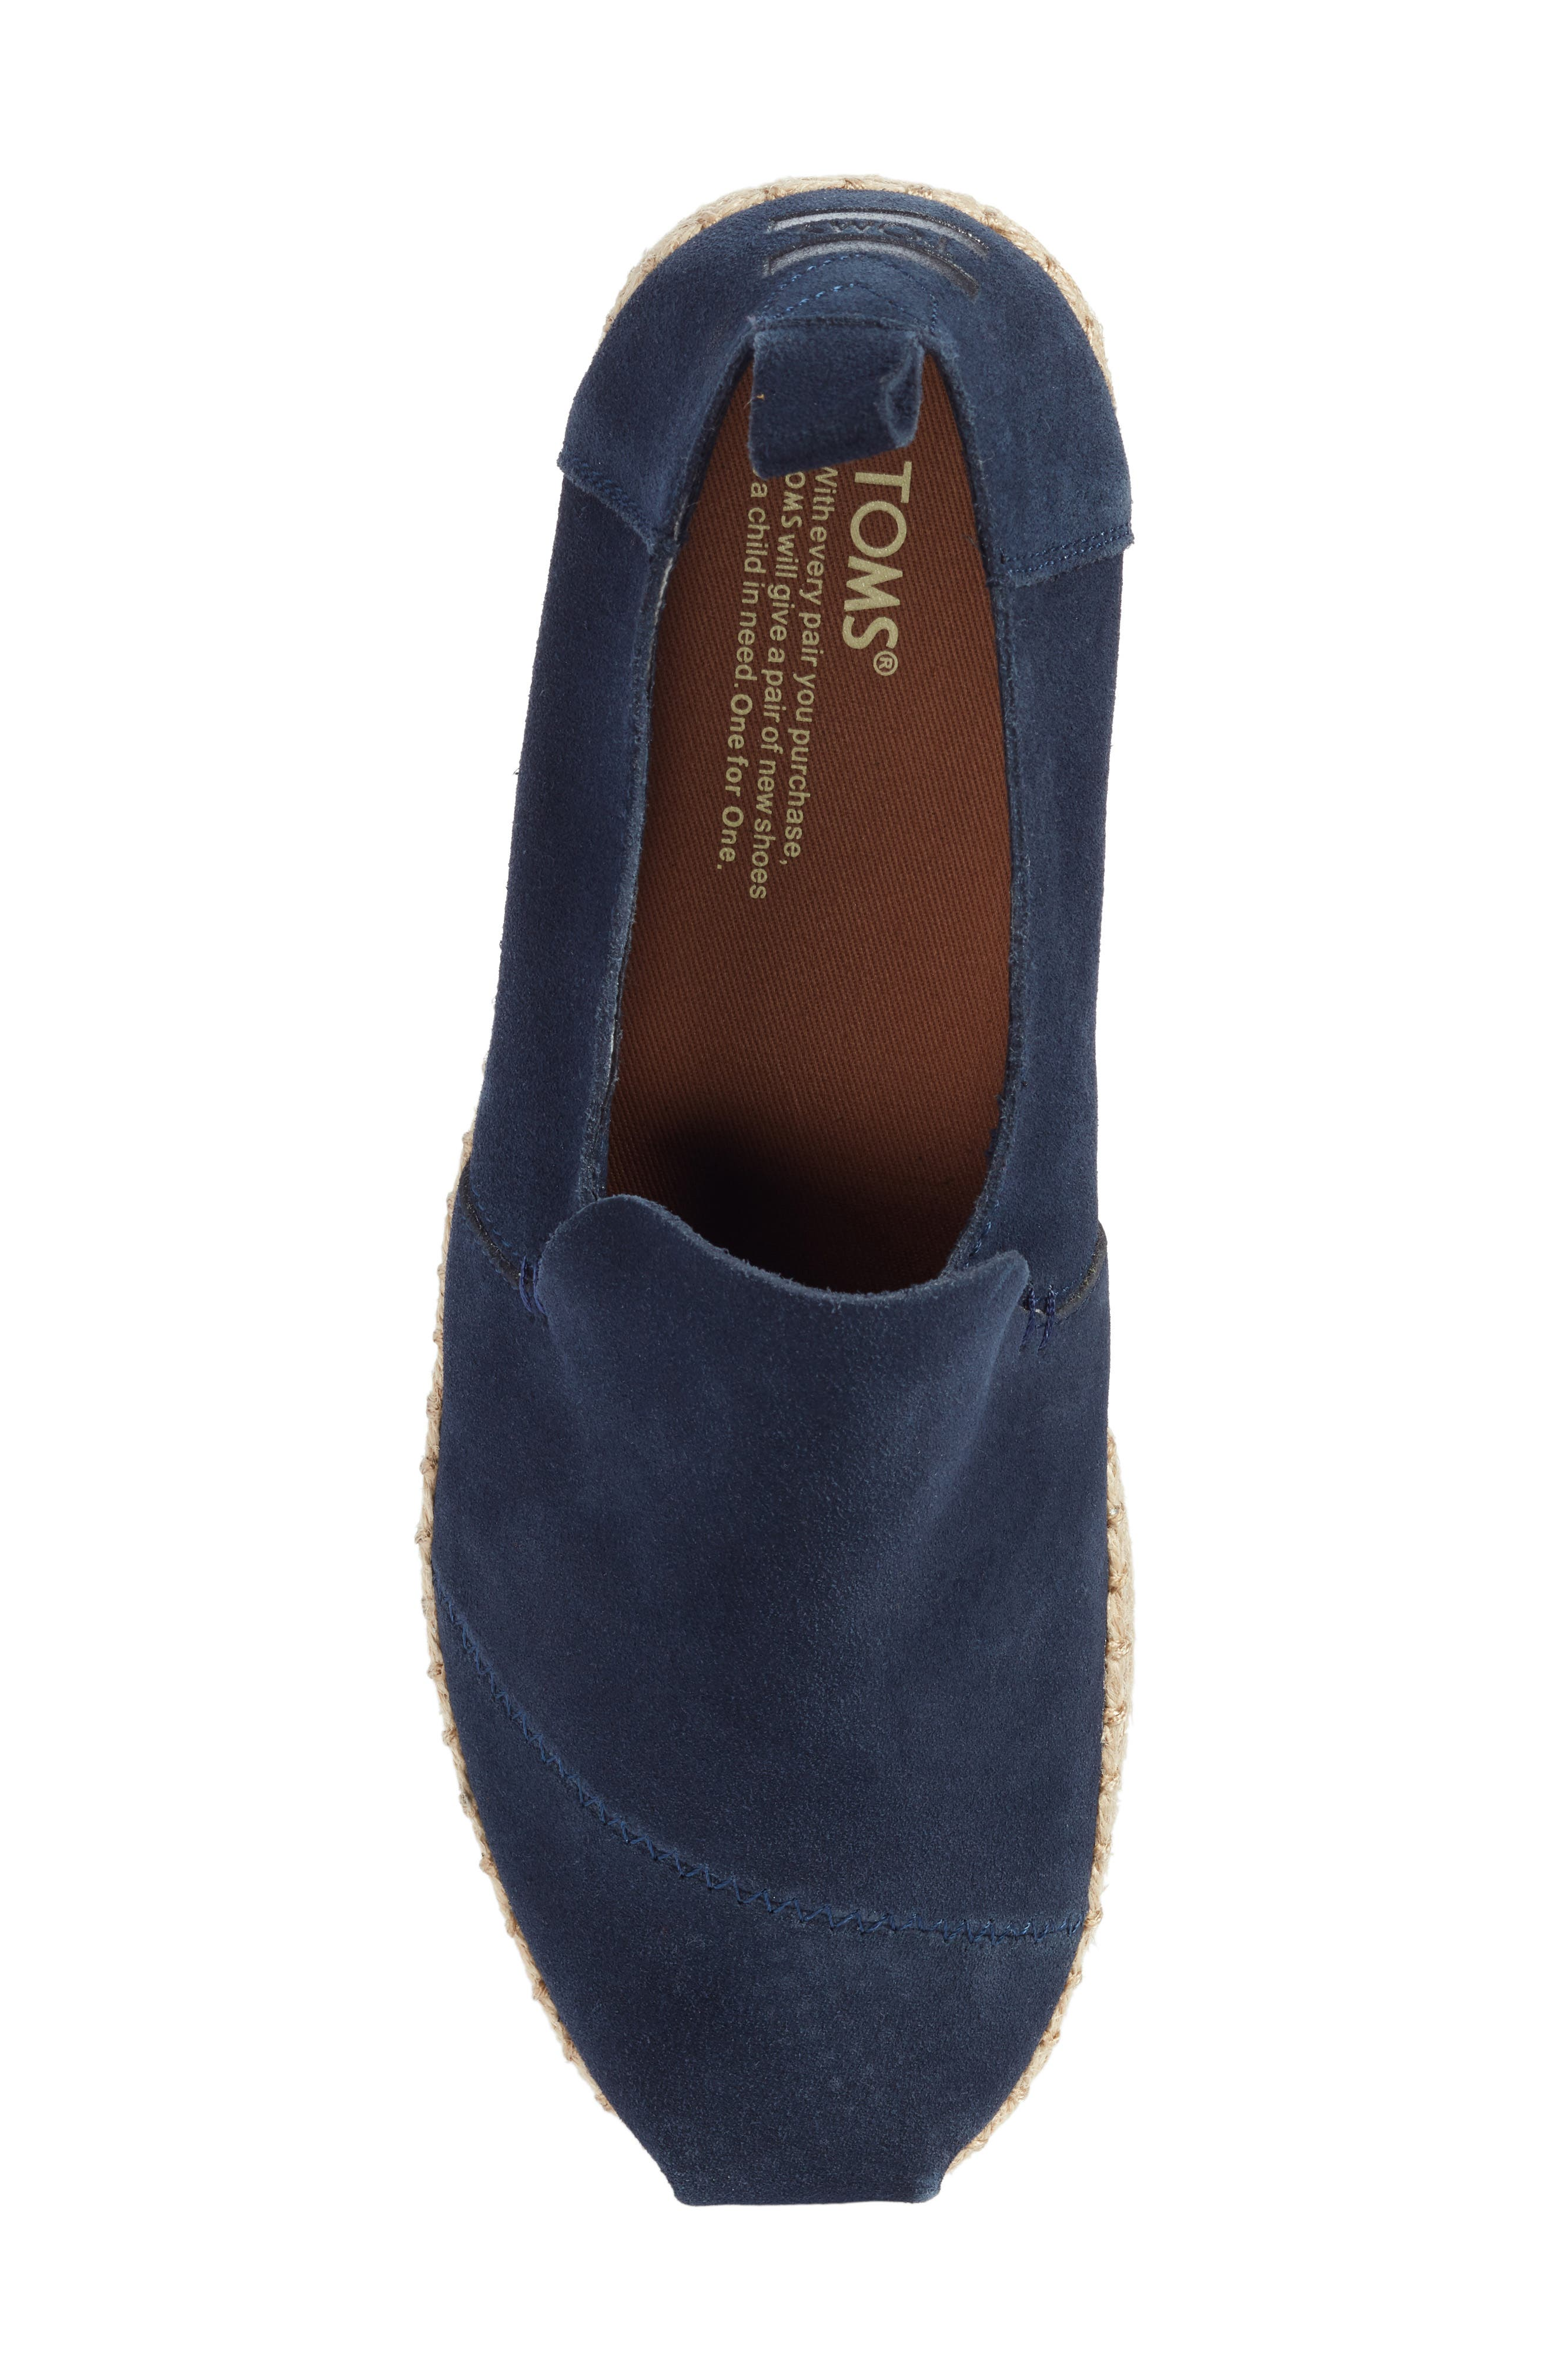 Deconstructed Alpargata,                             Alternate thumbnail 5, color,                             Navy Suede